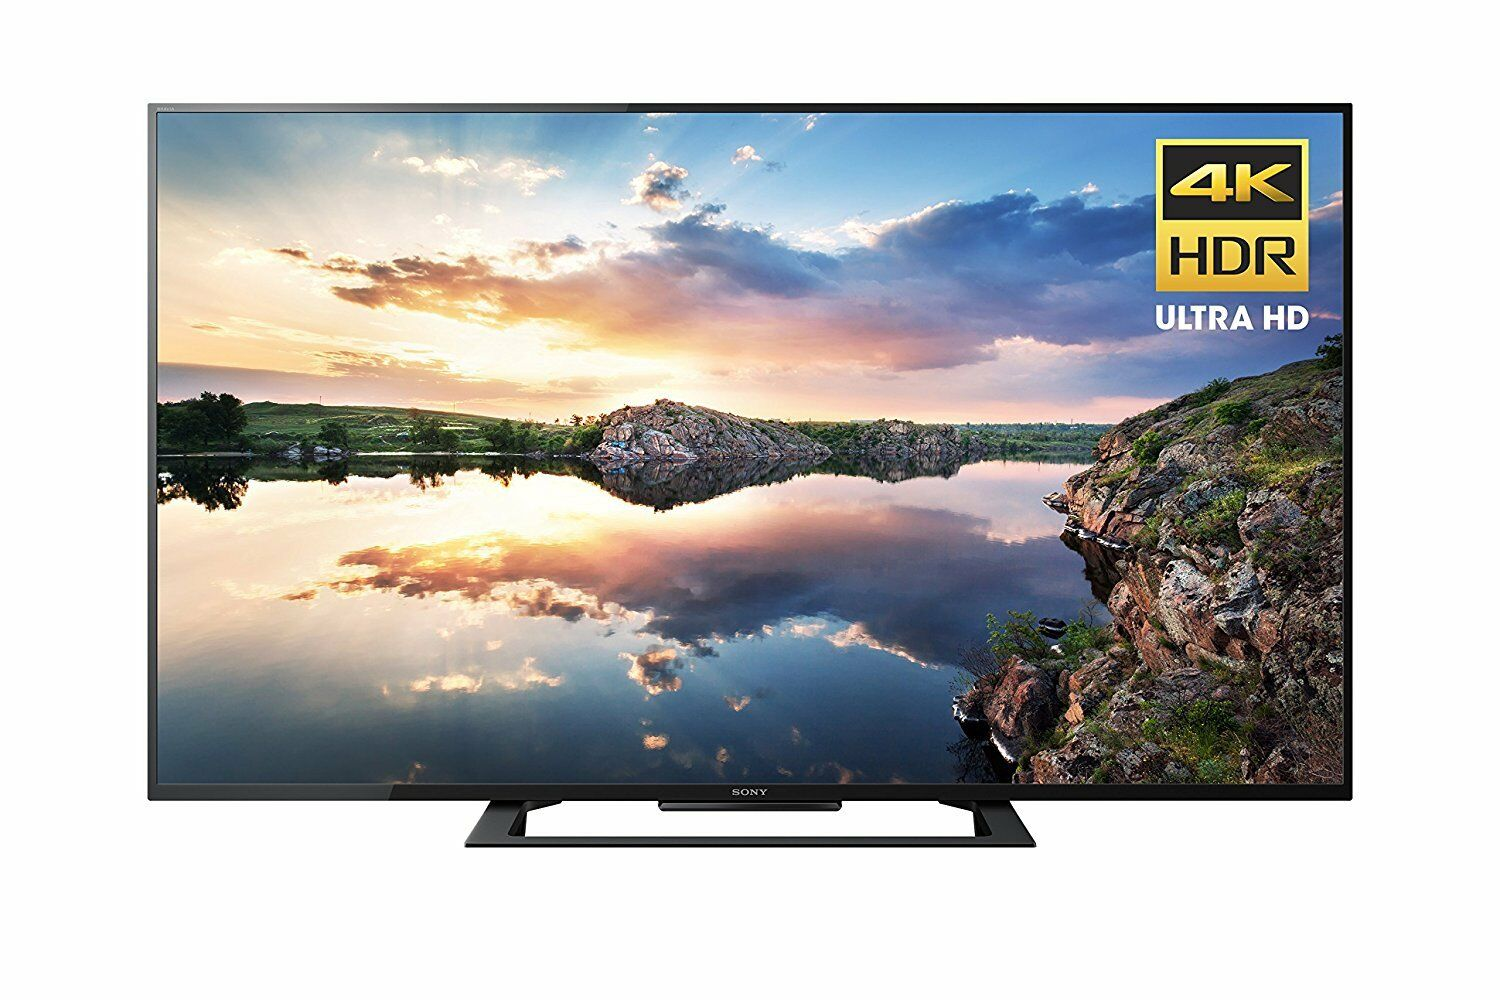 Sony Bravia KD50X690E 50-Inch 4K Ultra HD Smart LED TV newest model NEW OTHER